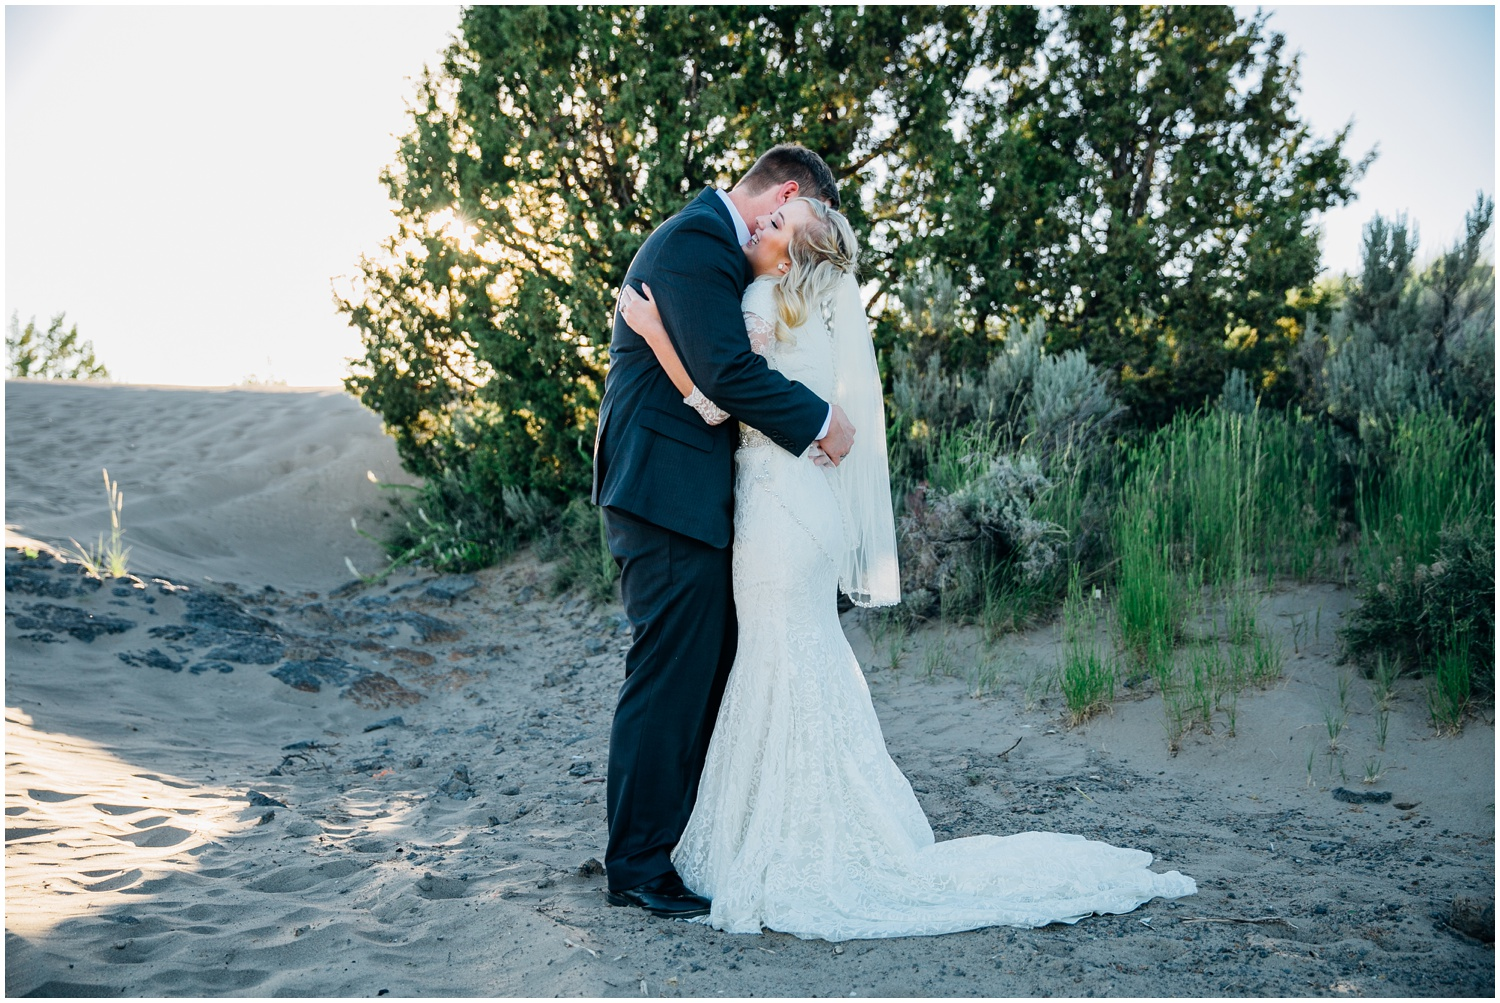 saint-anthony-sand-dunes-bridals-idaho-engagements-colorado-wyoming-wedding-photographer_0708.jpg